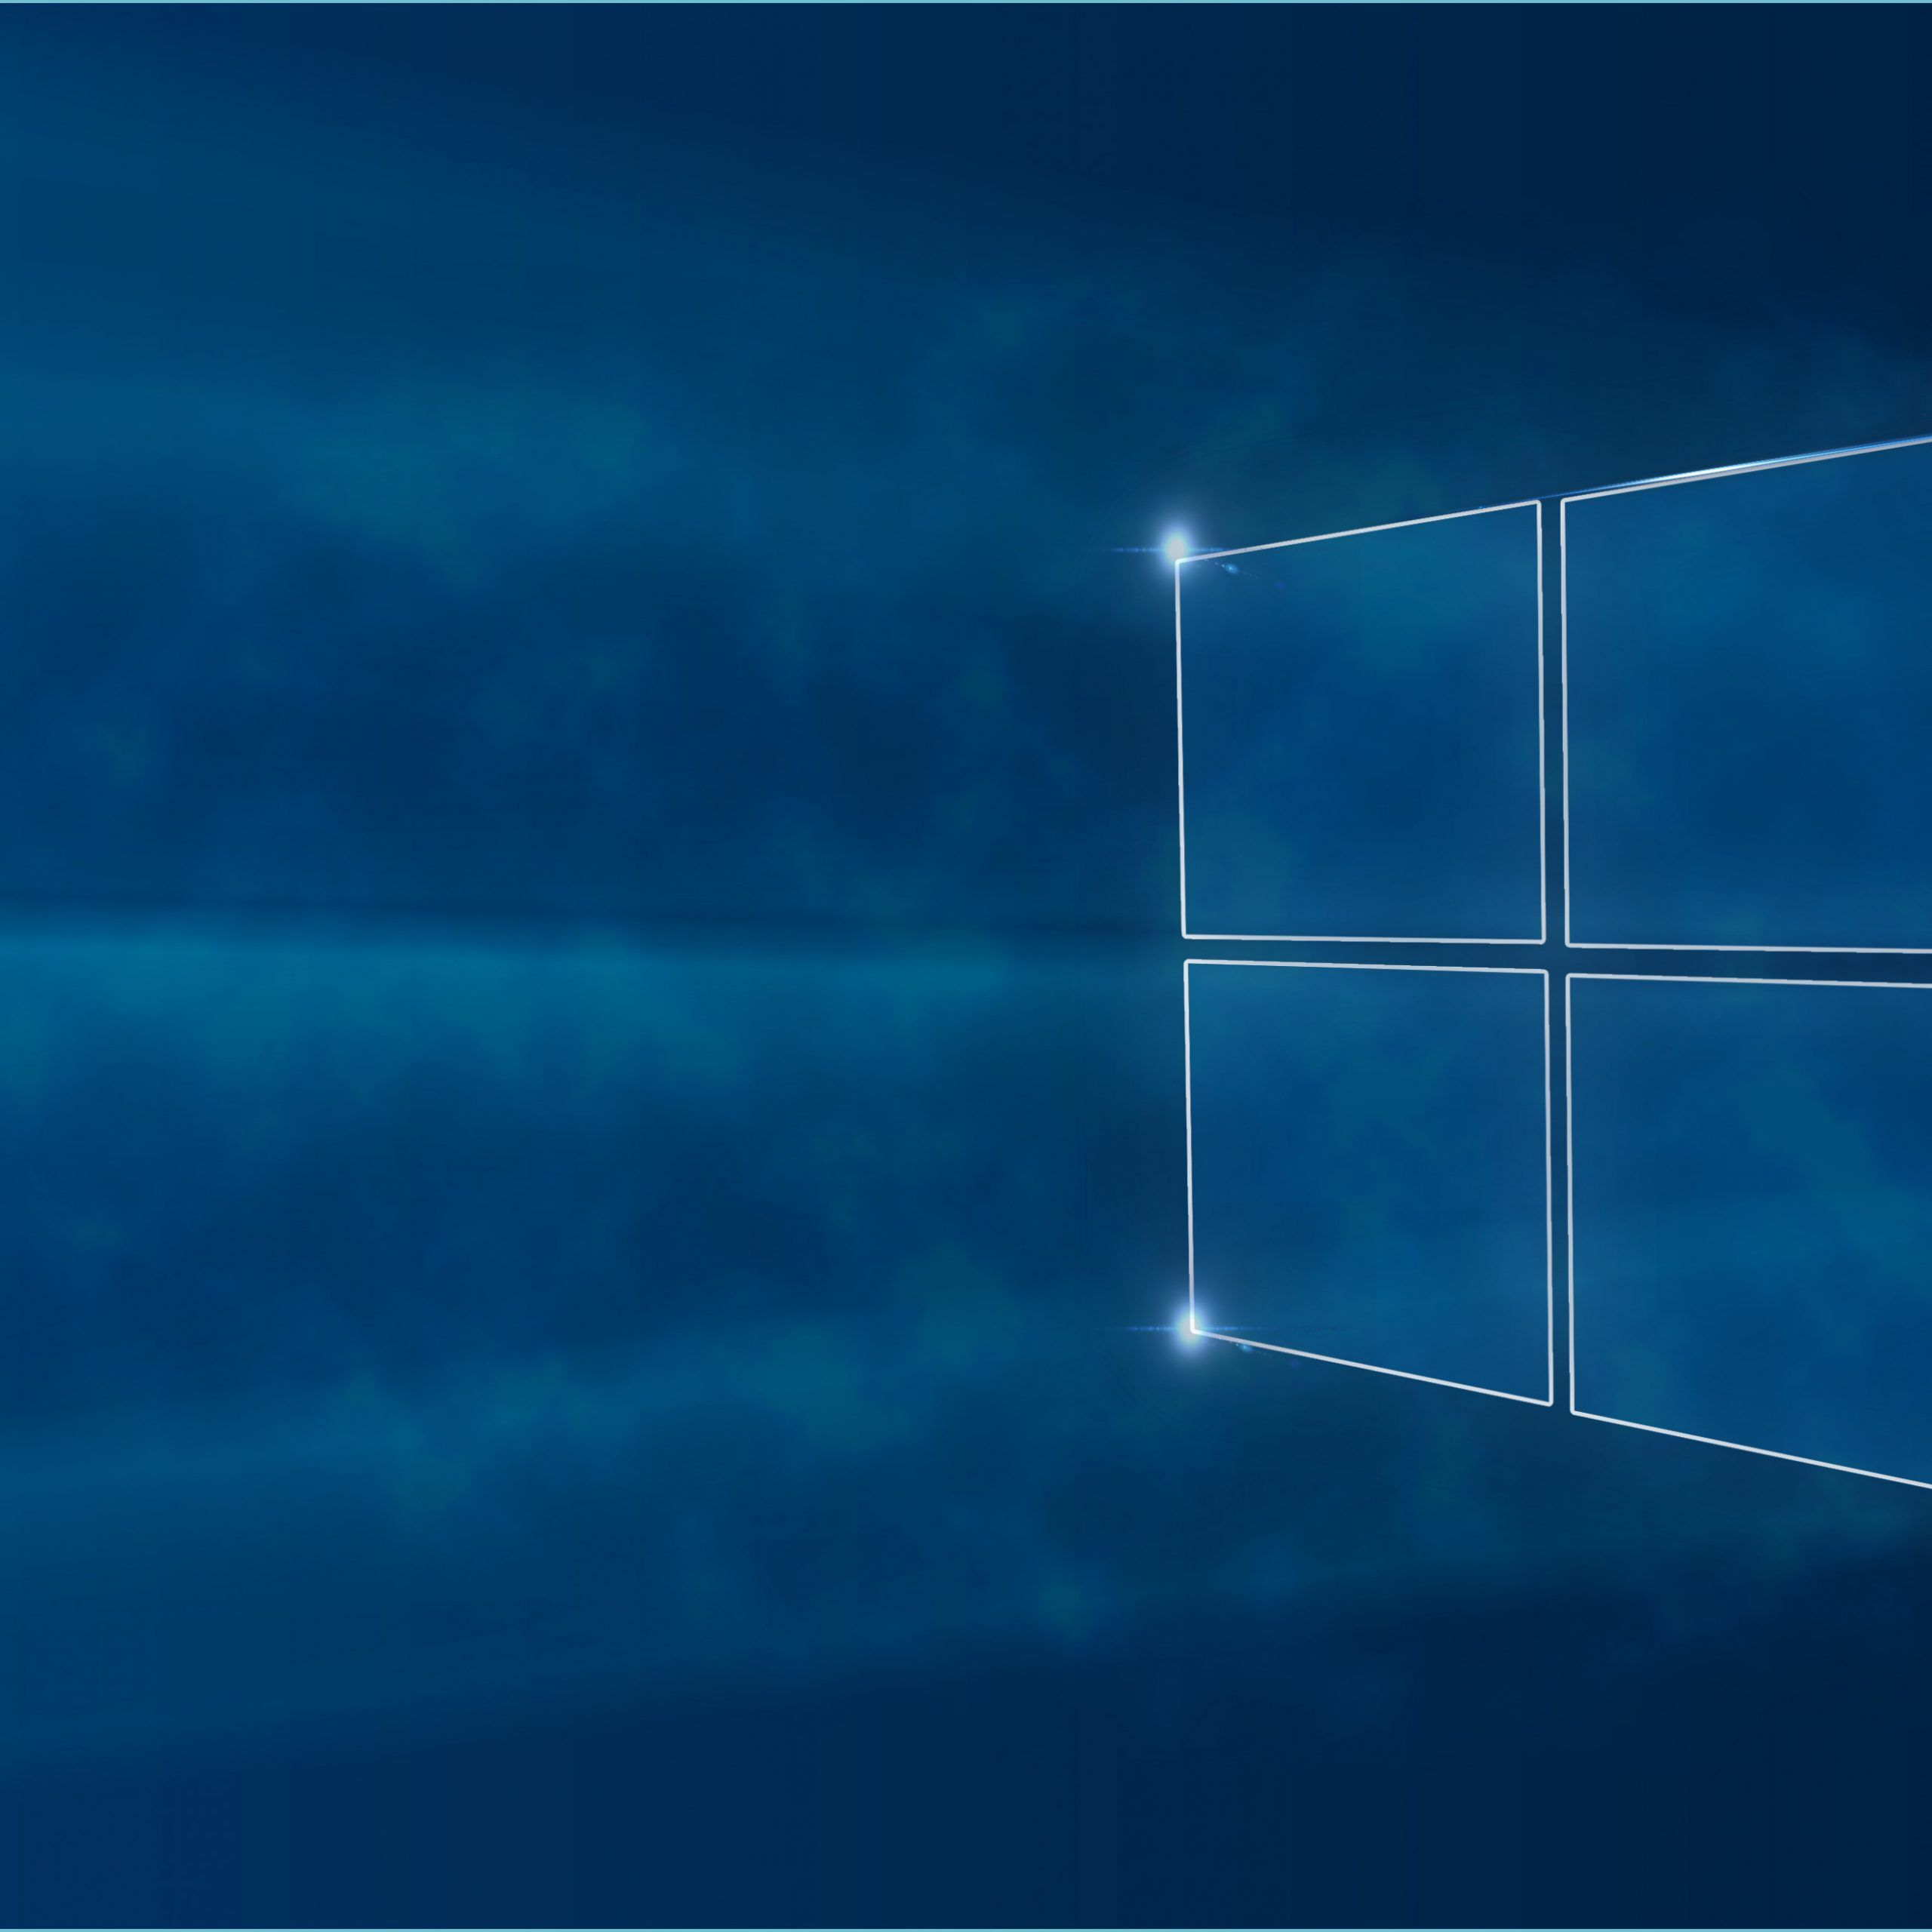 13 Features Of Windows 13 Background That Make Everyone Love It Windows 13 Background Windows Windows 10 Background Wallpaper Windows 10